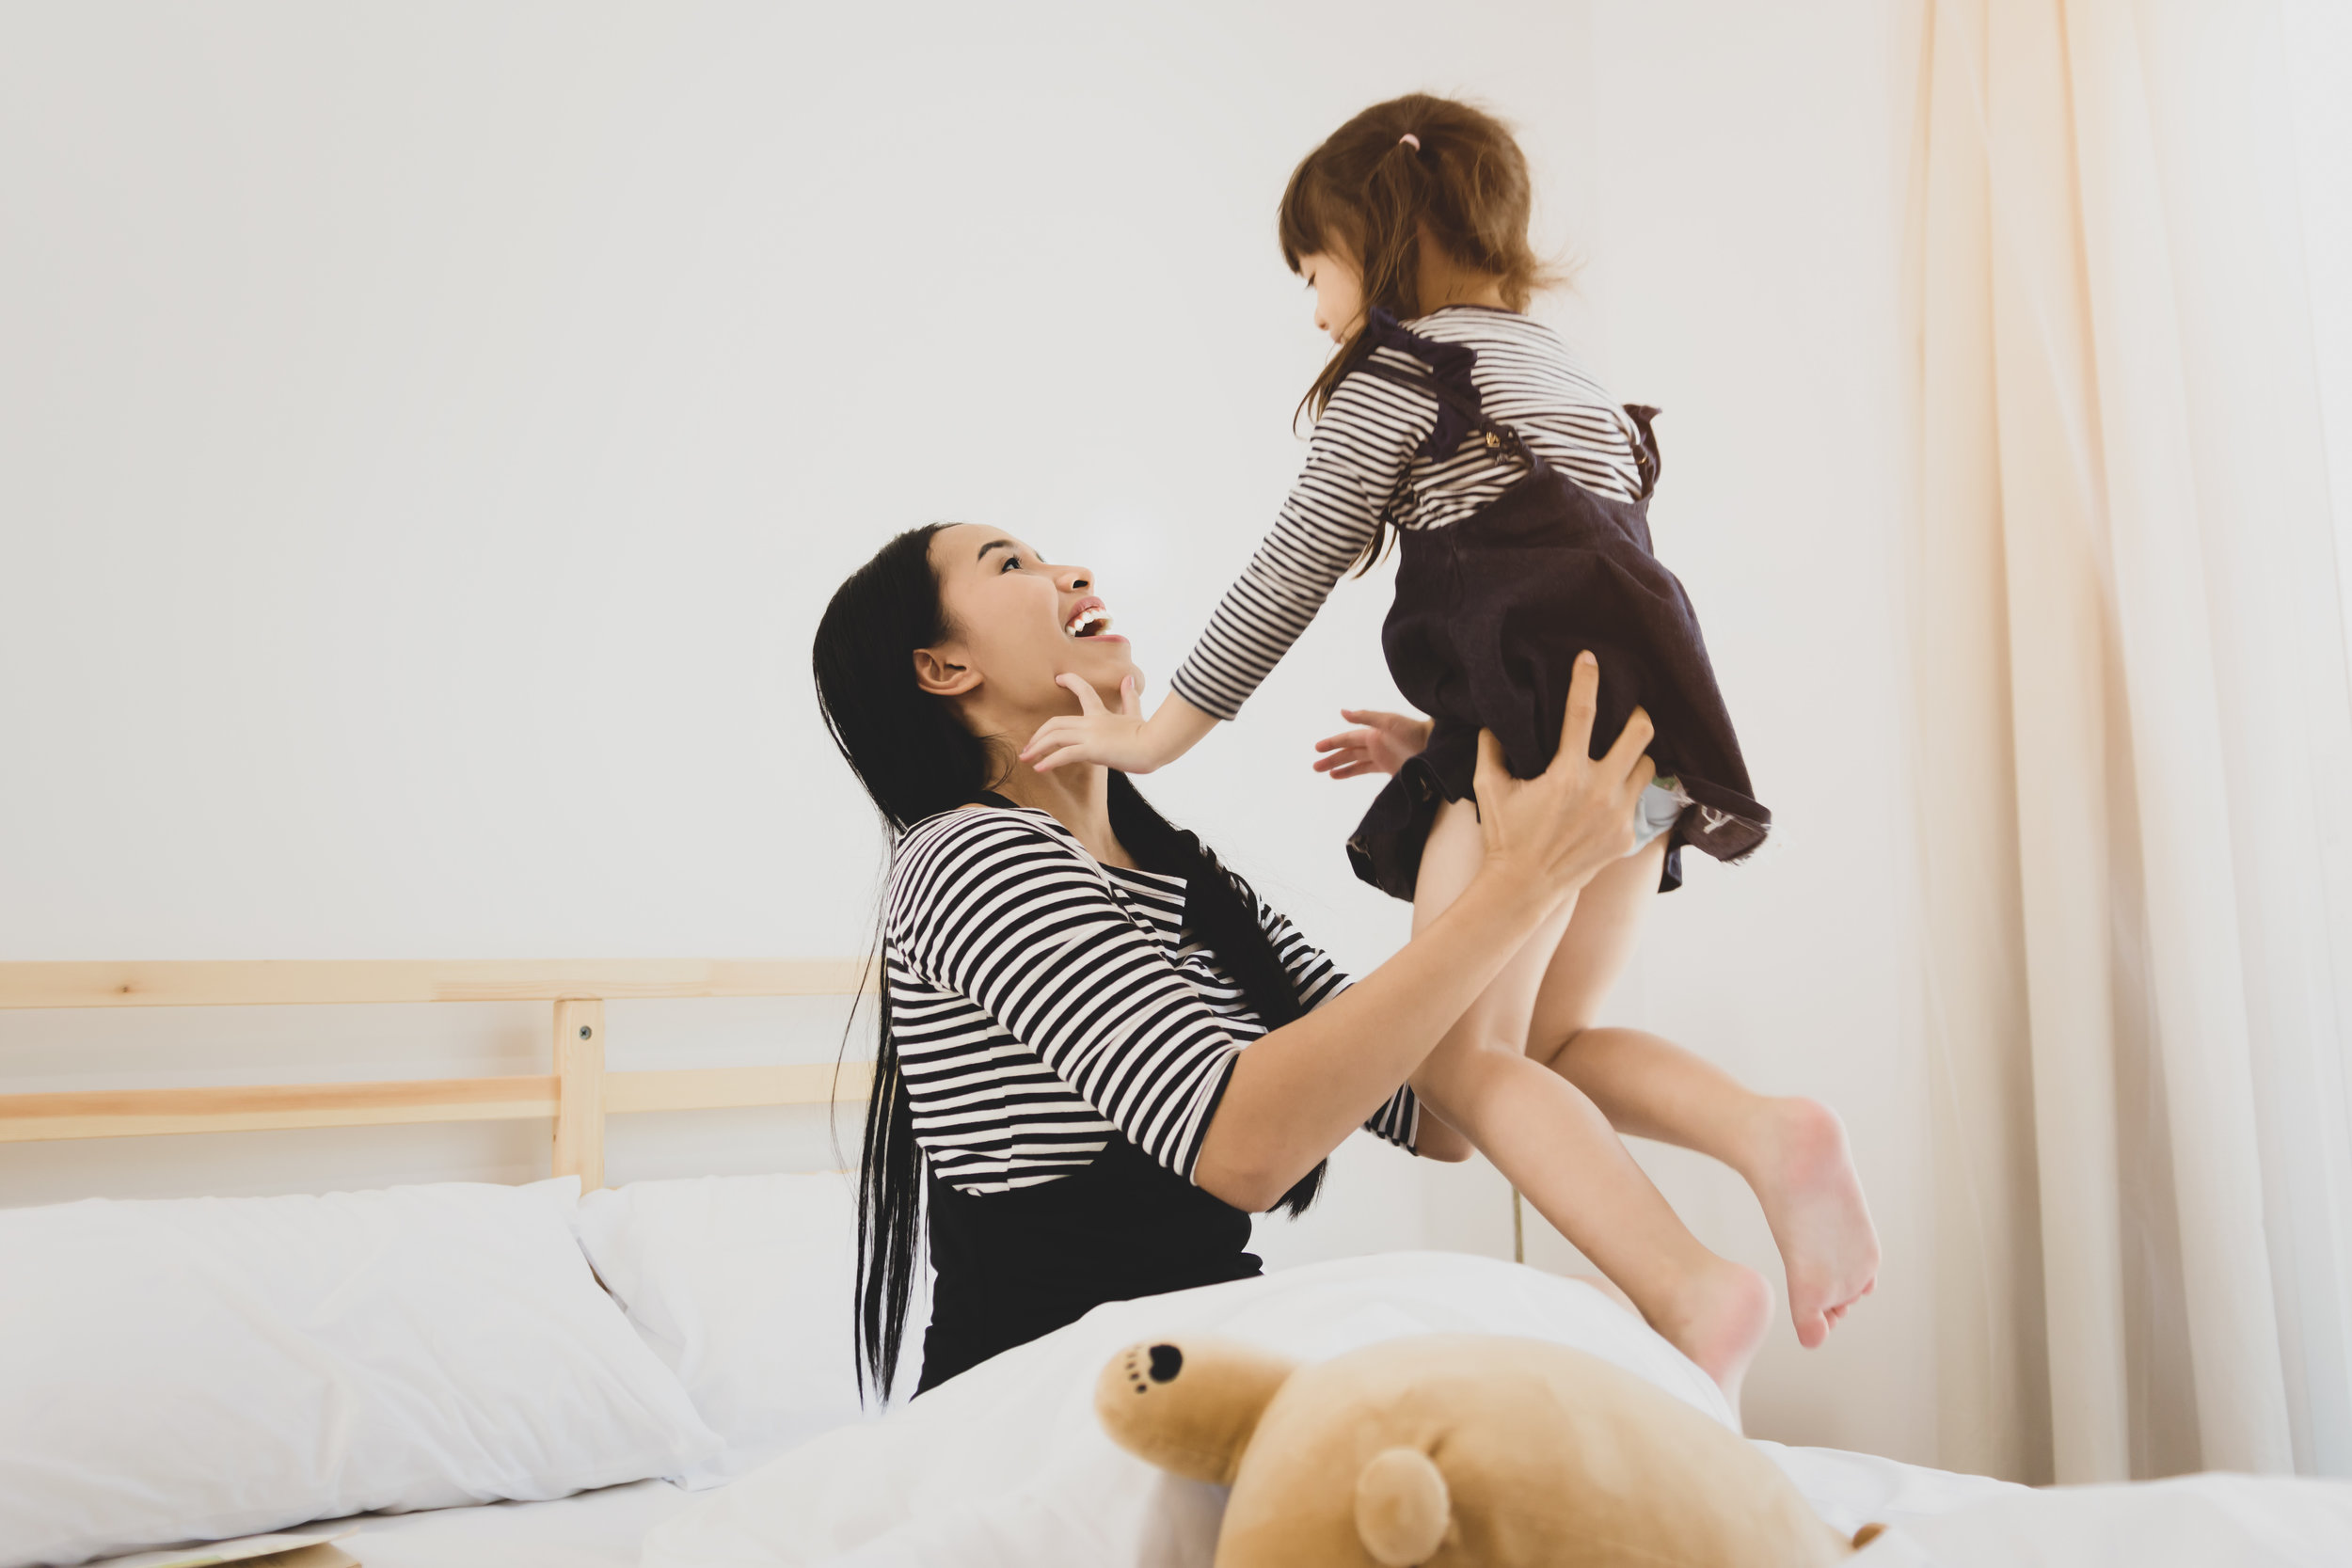 Fertility for Women - Whether you're ready to conceive or are simply looking to take your fertility options into your own hands, this treatment helps with:• Optimizing and regulating hormones• Irregularities with menstrual cycle including PCOS, endometriosis, anovulation, dysmenorrhea• Low AMH• Pain during intercourse